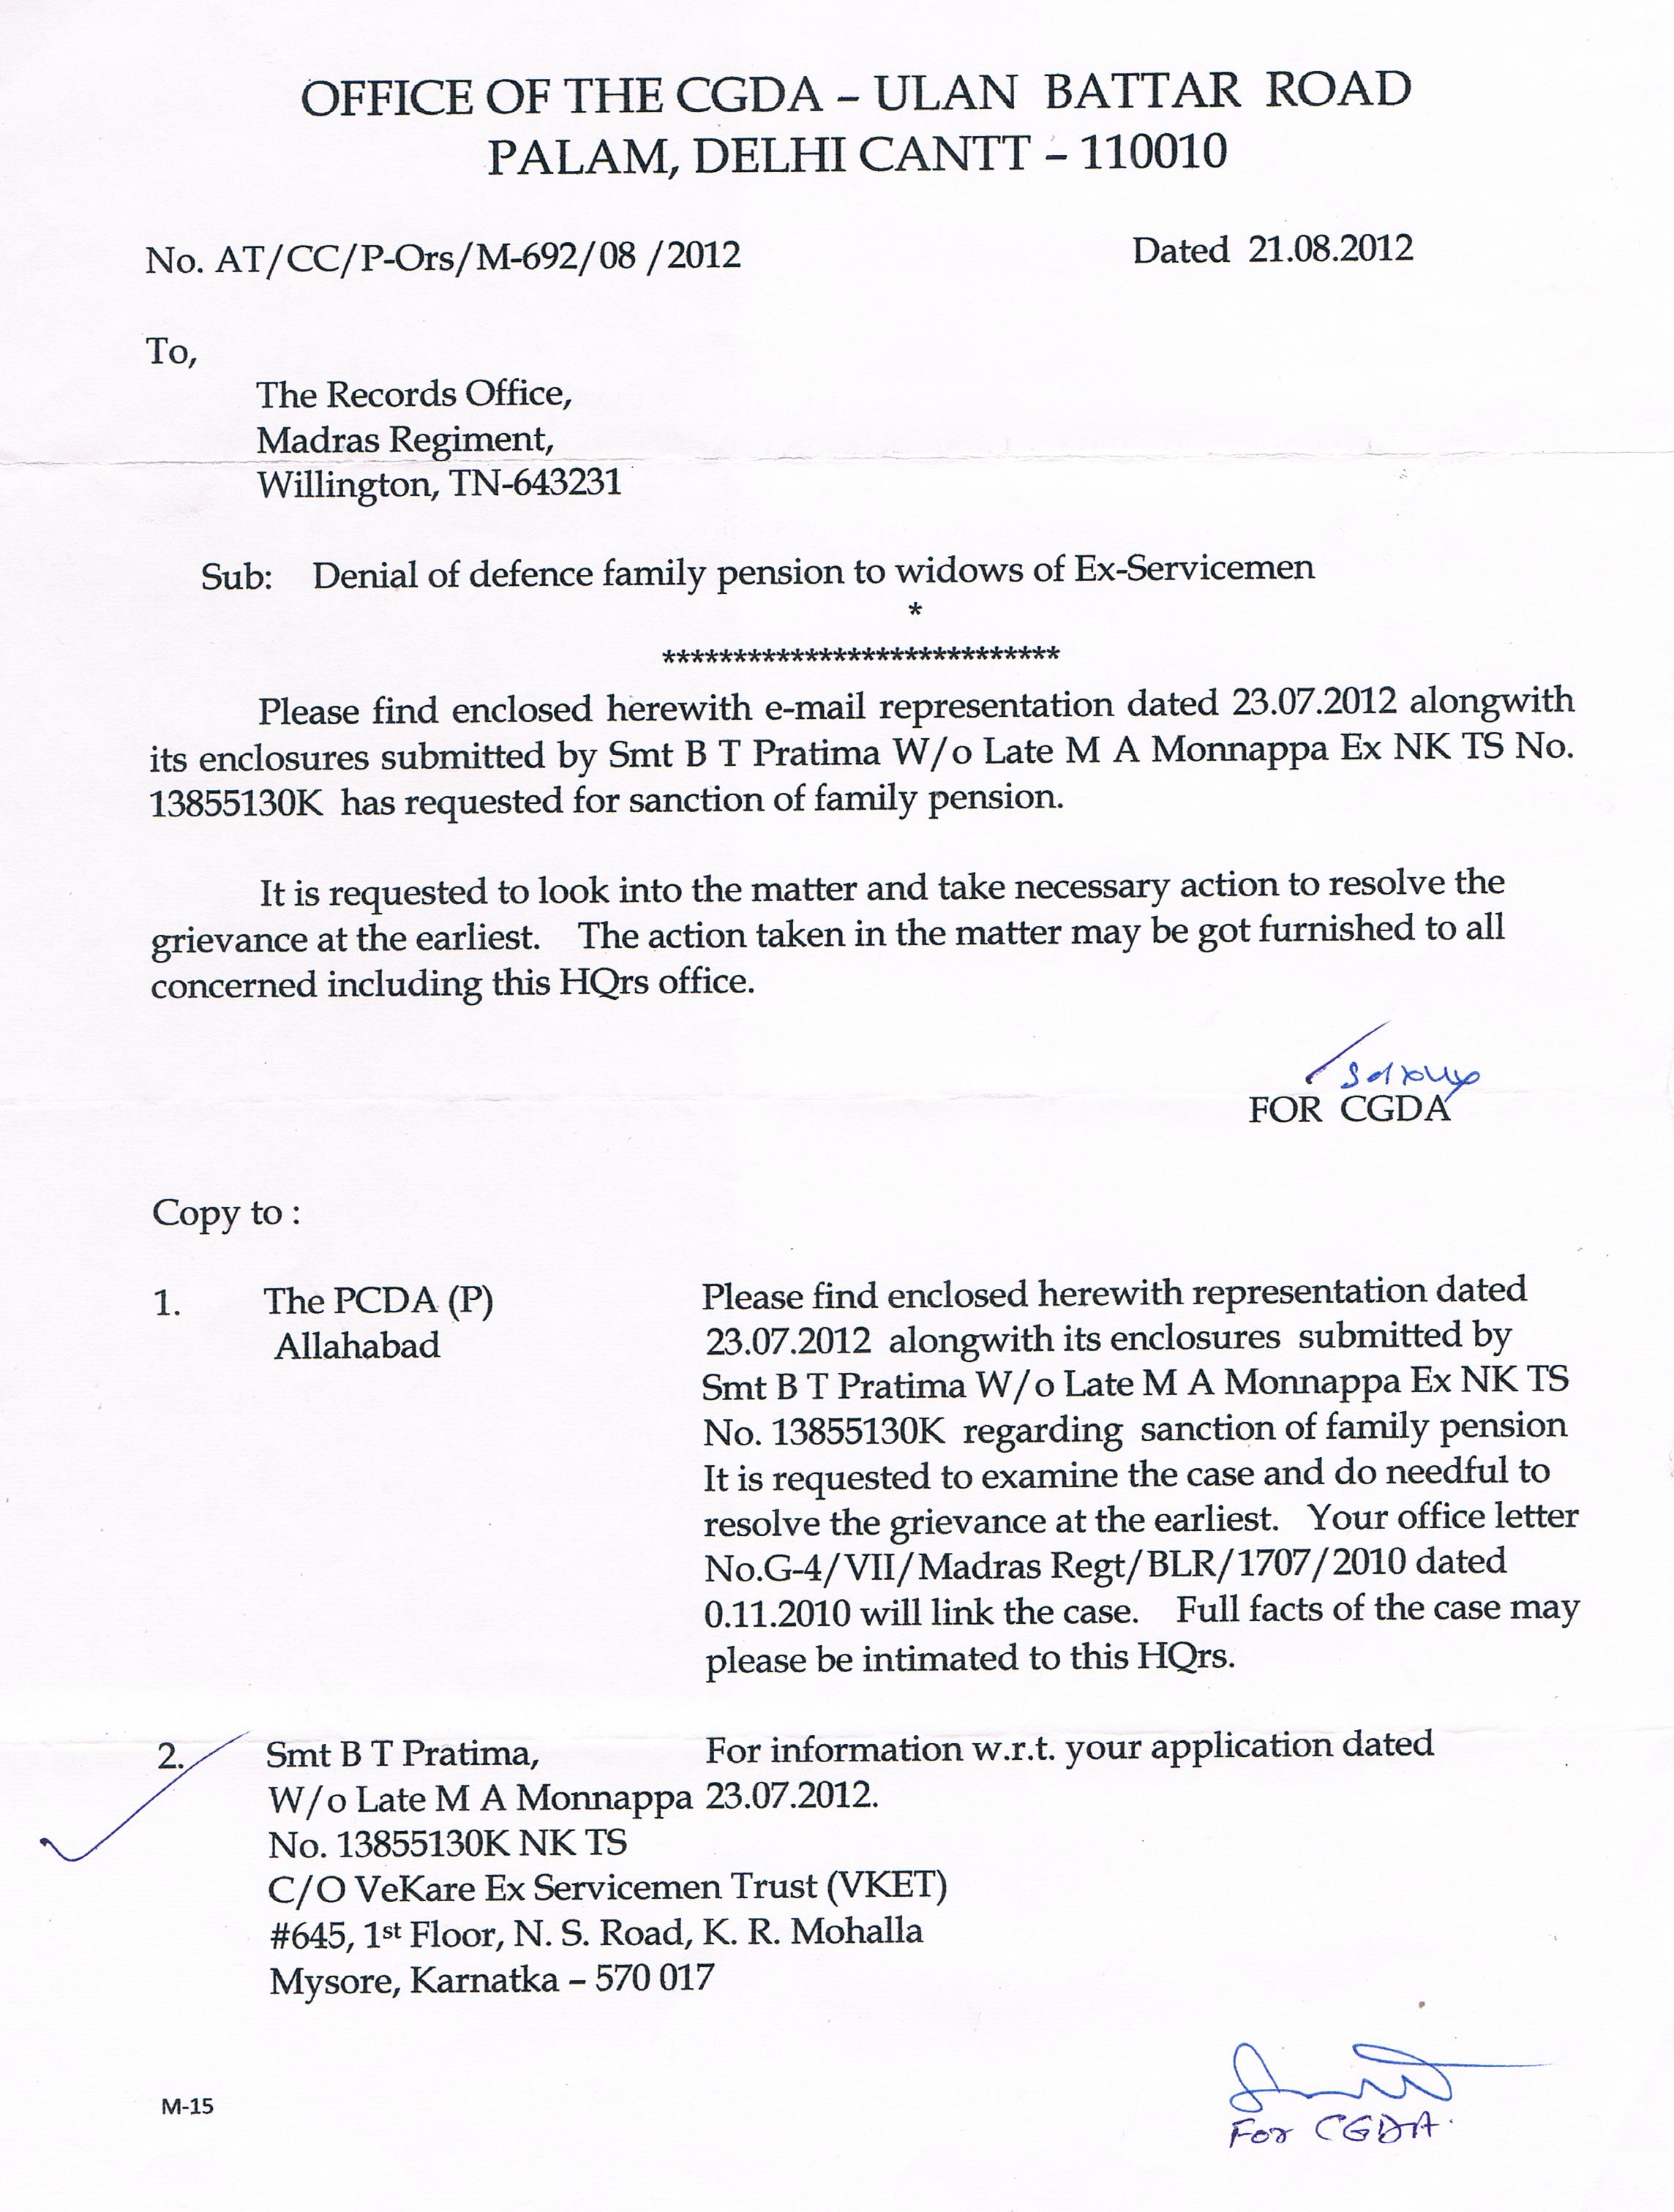 005 CGDA Reply Ltr 21.08.2012